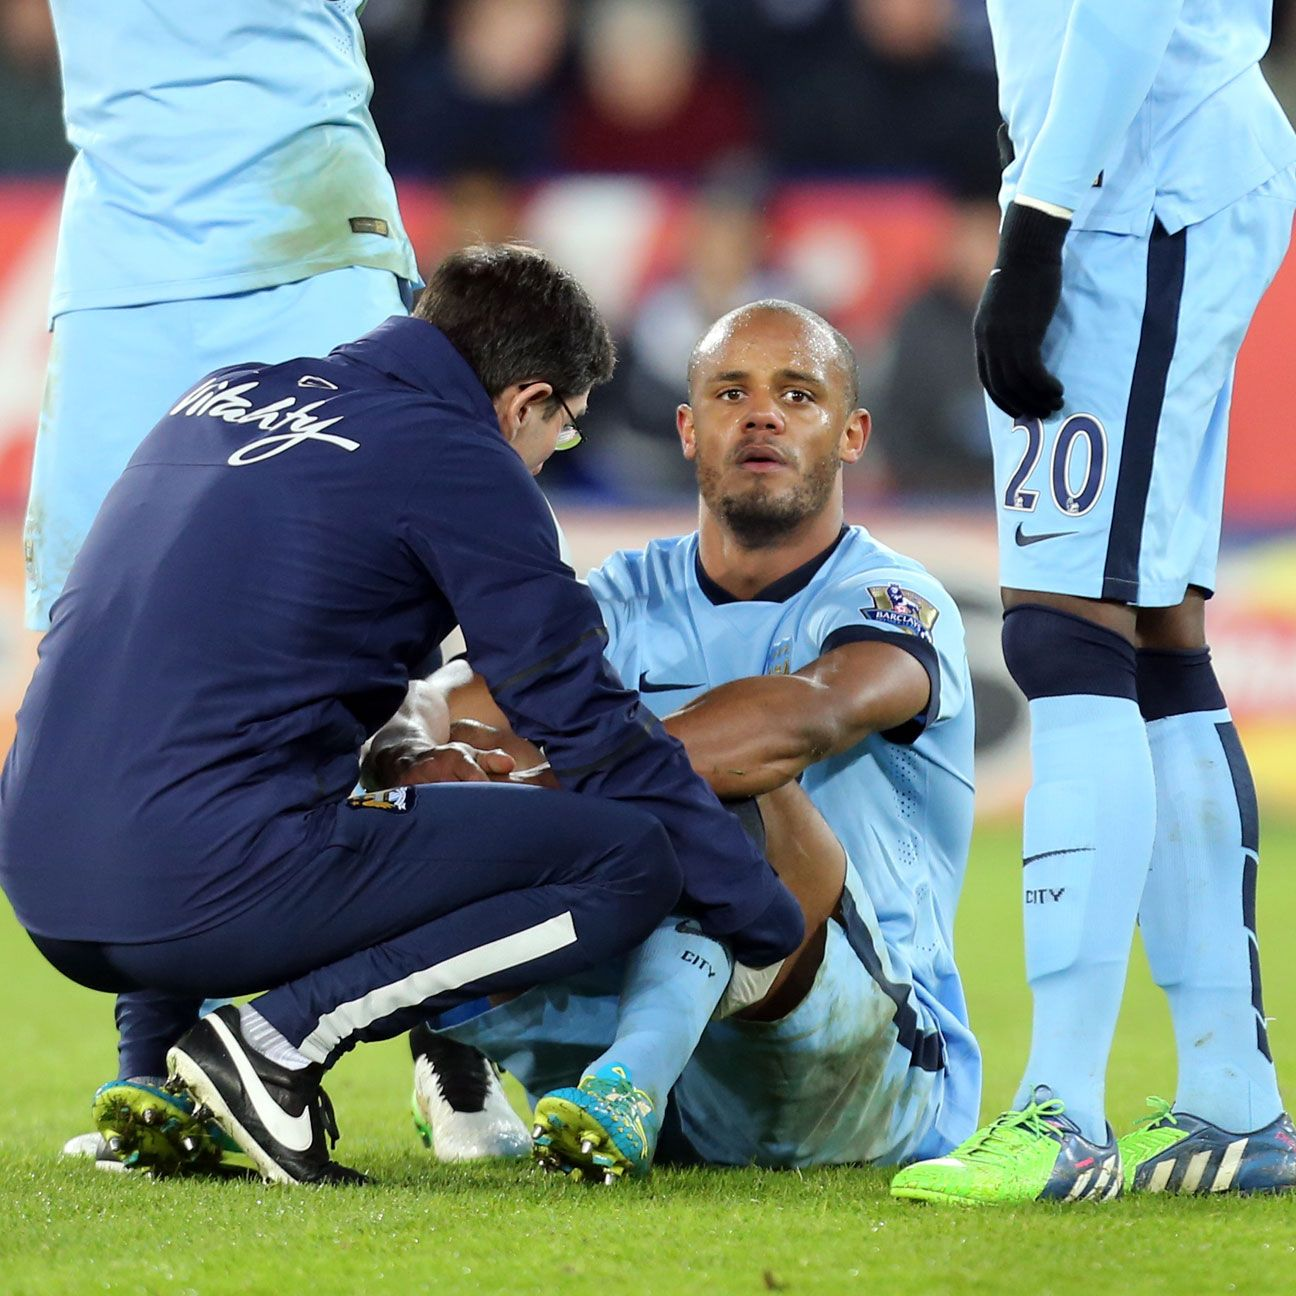 Vincent Kompany was enjoying another solid performance before having to depart due to injury.